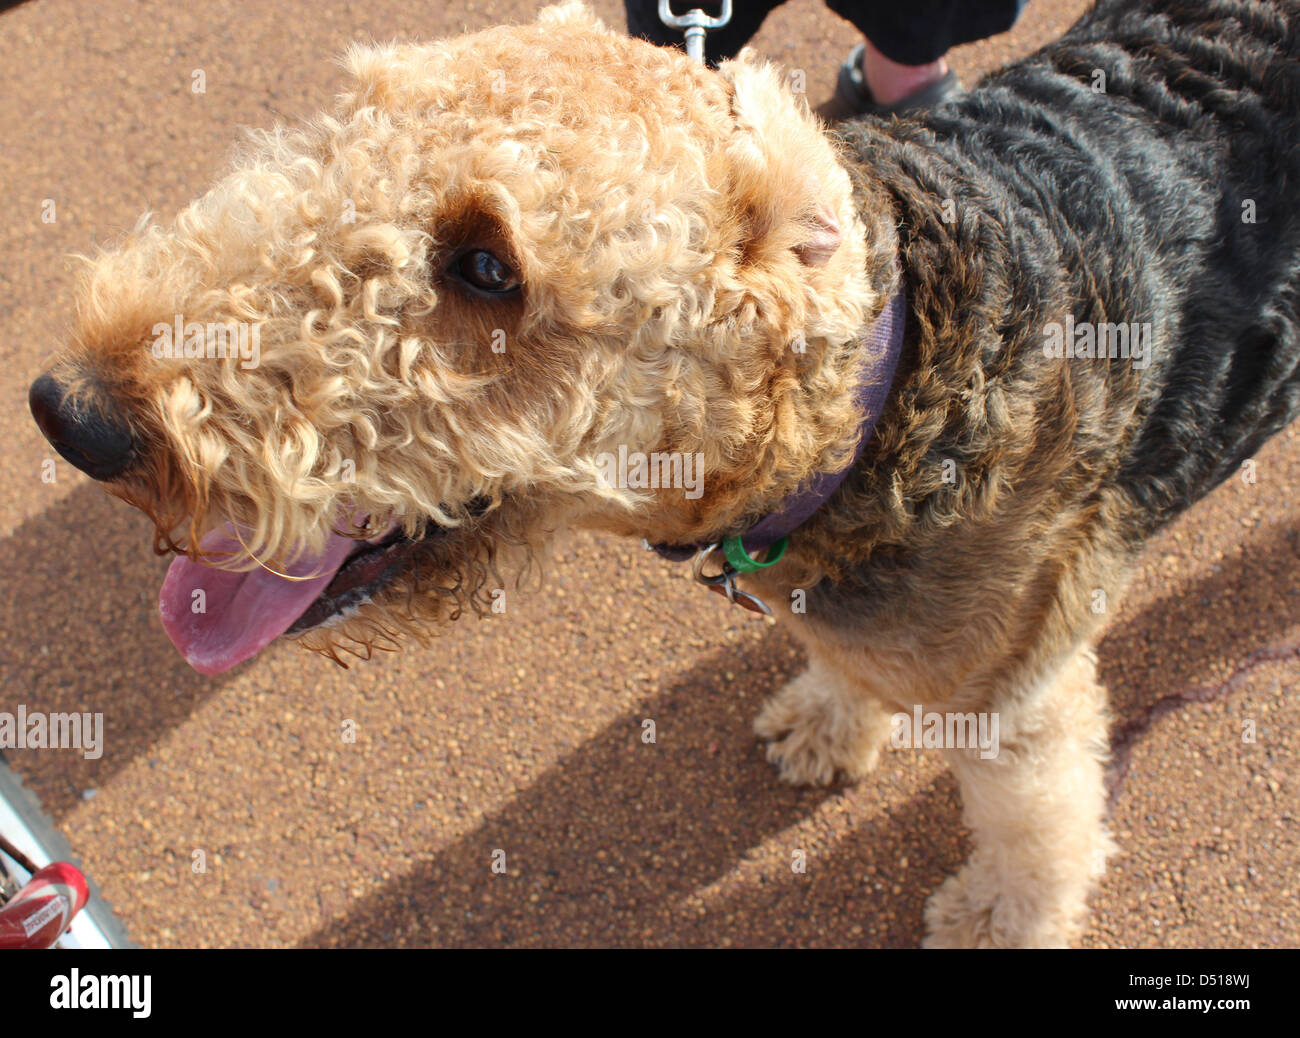 A newly clipped  brown shaggy coated Airedale terrier pauses  during his early afternoon walk   in the park. - Stock Image